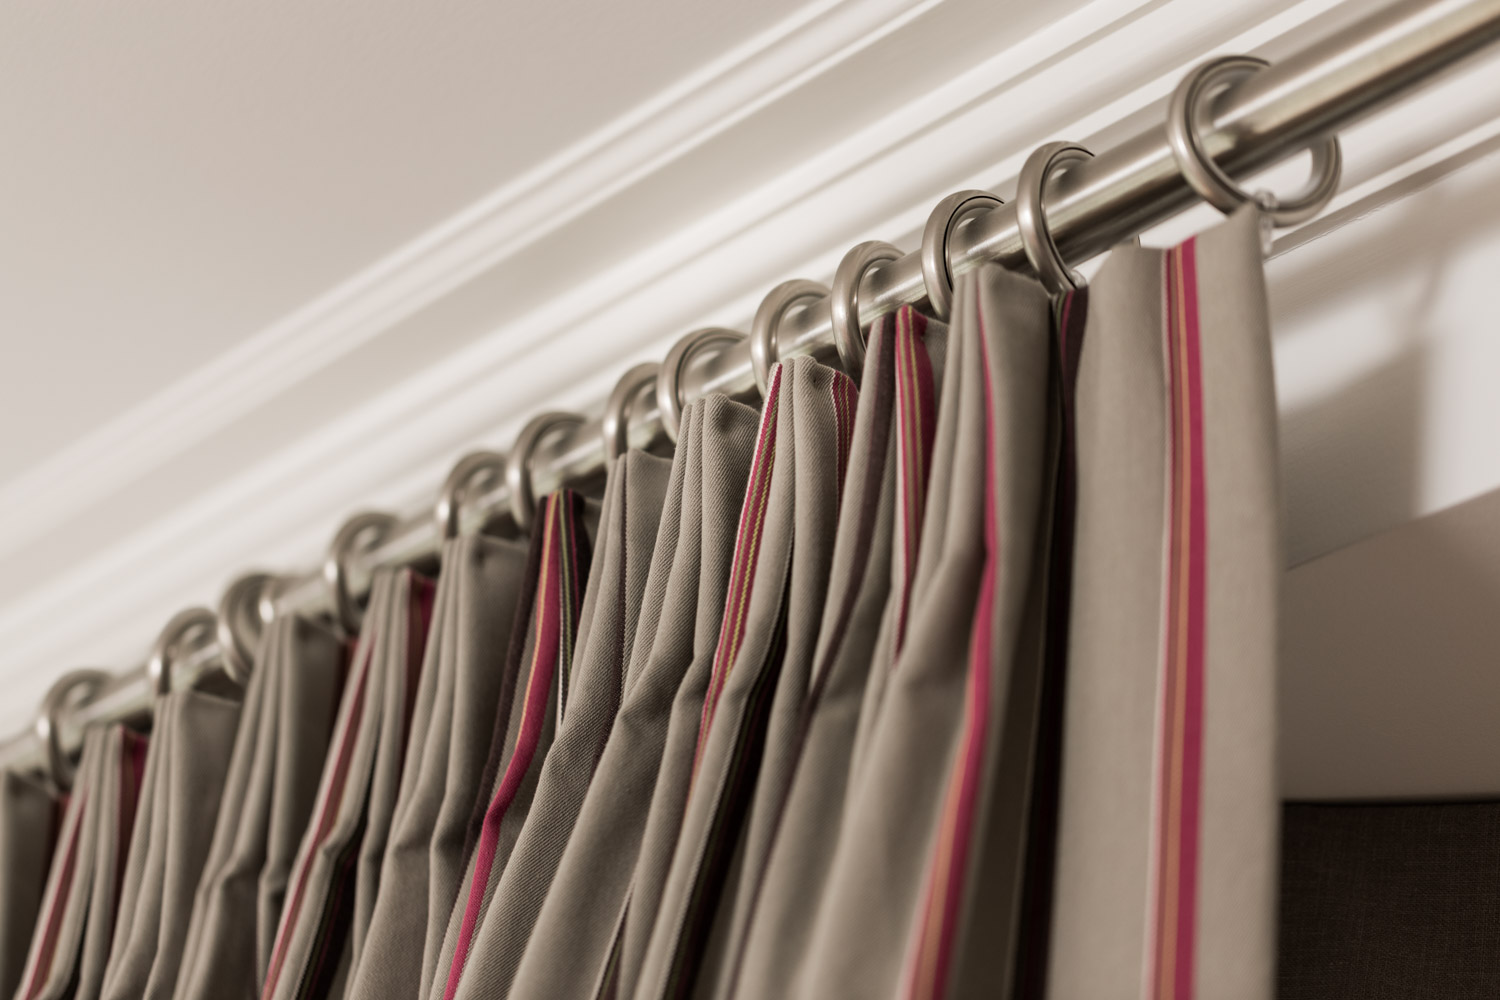 Mounting your window treatments near the ceiling will make your window appear taller, to expand a small space.